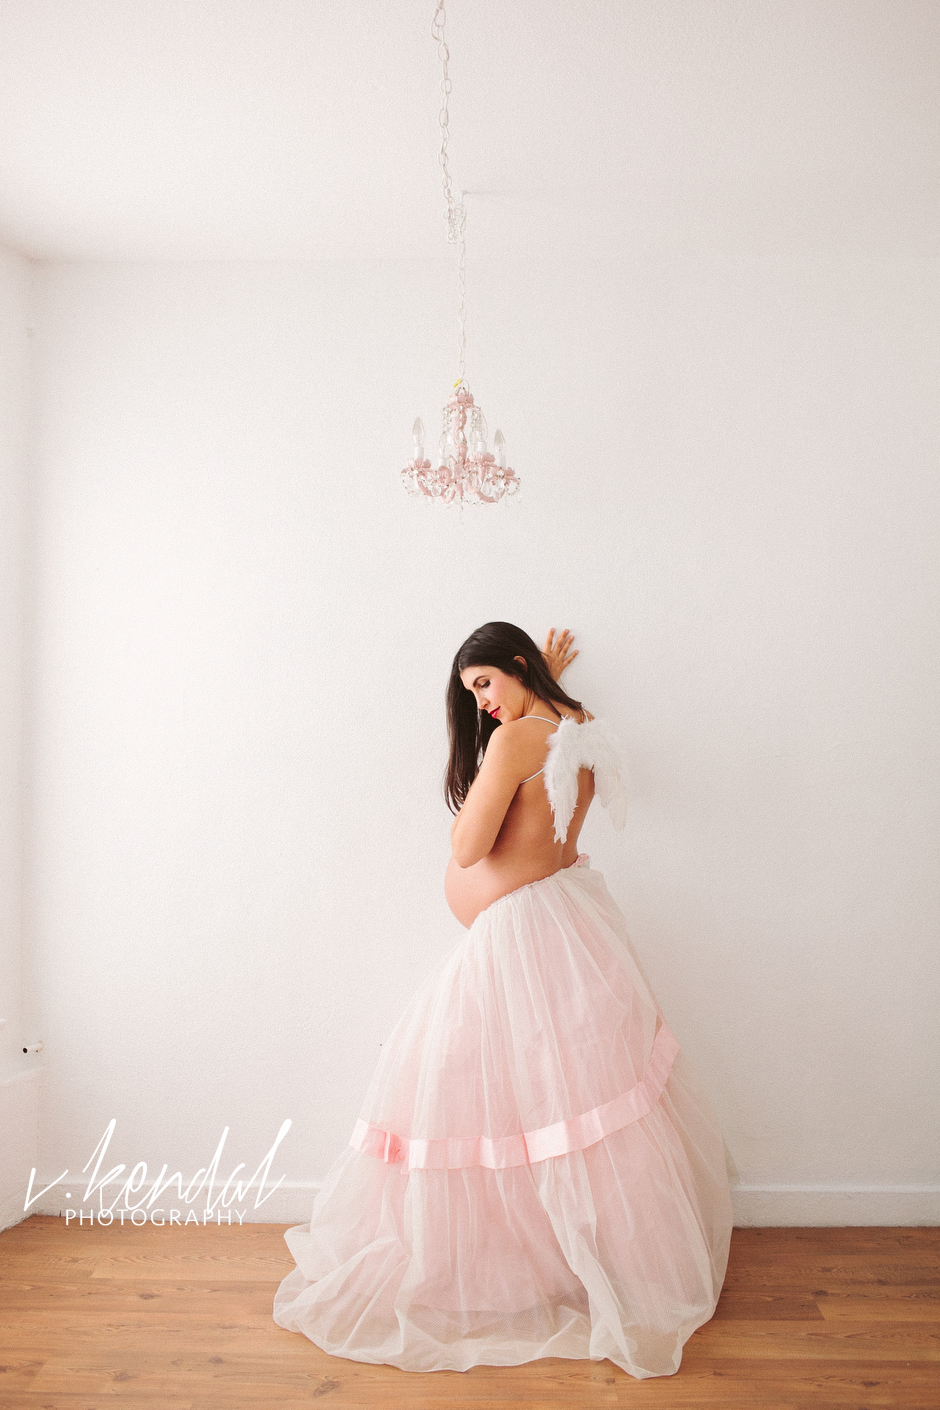 Anoushka - Blog-Los-Angeles-Studio-Maternity-Photos-V-Kendal-Photography209.JPG